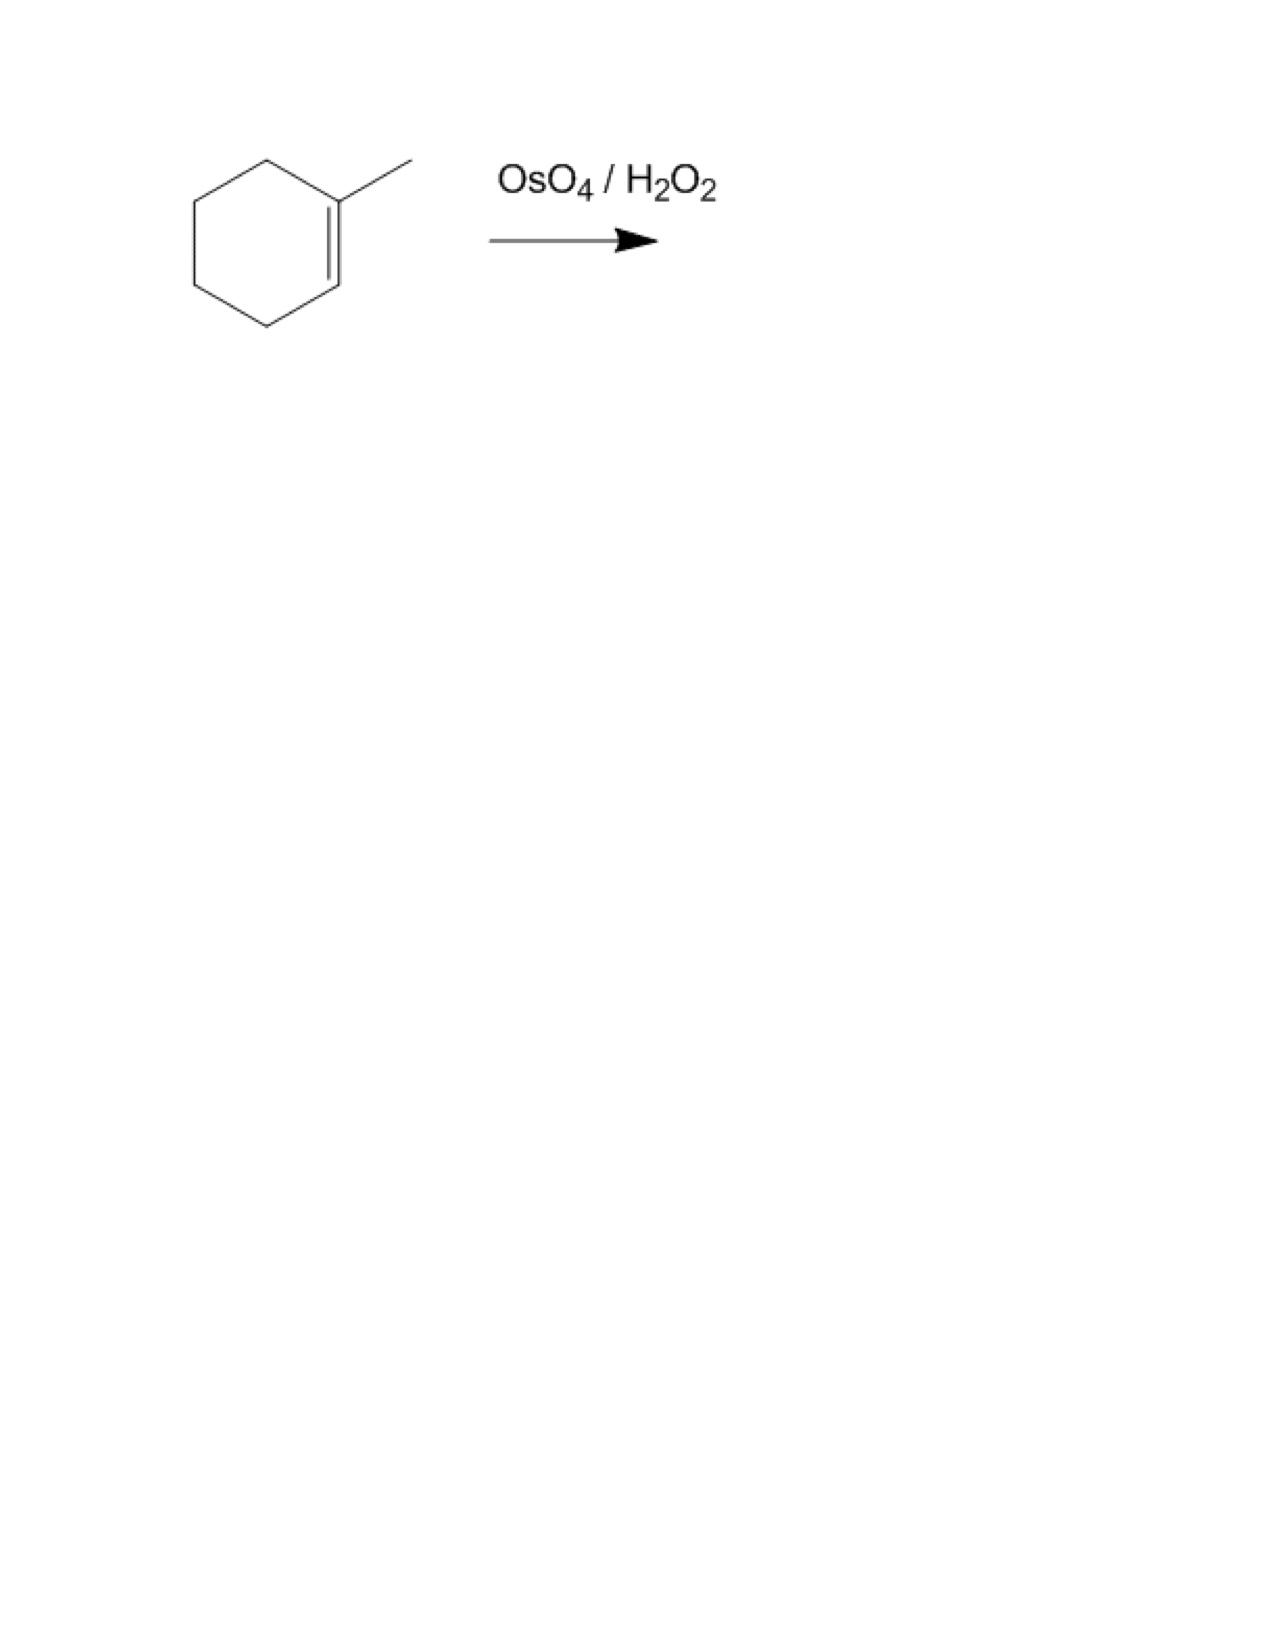 Draw the structure resulting from a reaction of os